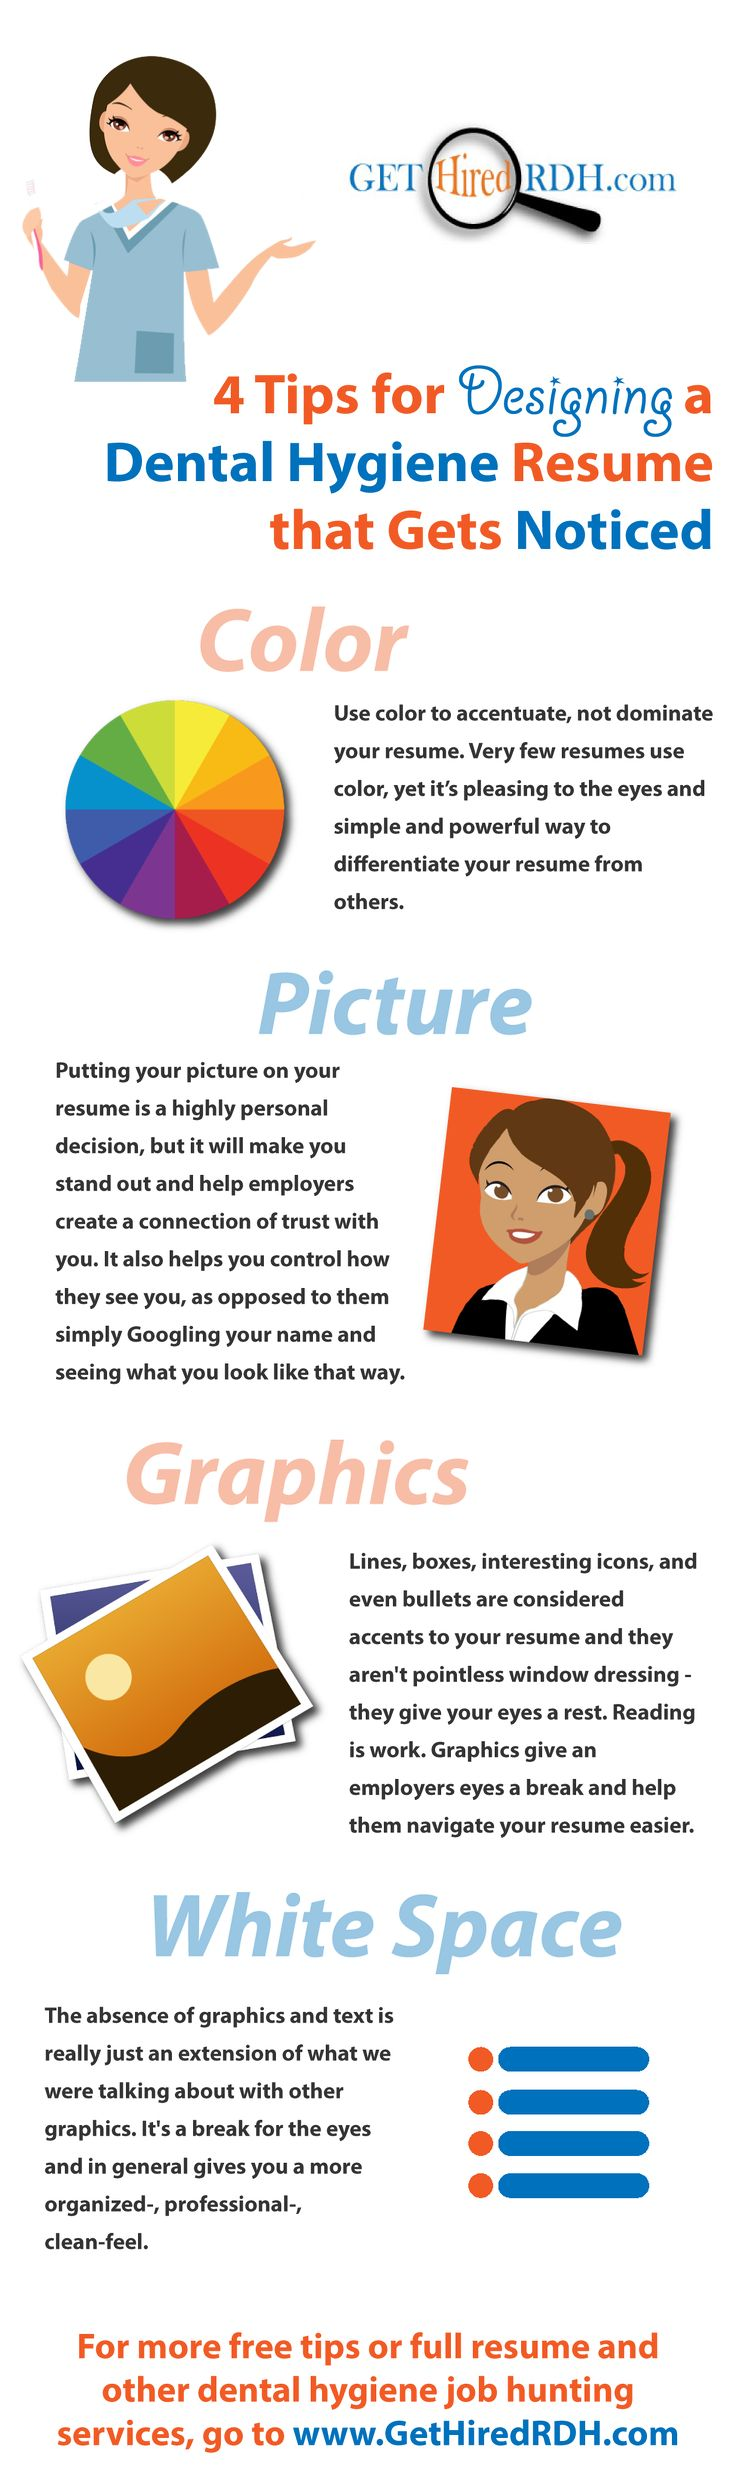 resume Dental Hygienist Resume 33 best dental hygiene resumes images on pinterest 4 tips for designing a resume that gets noticed